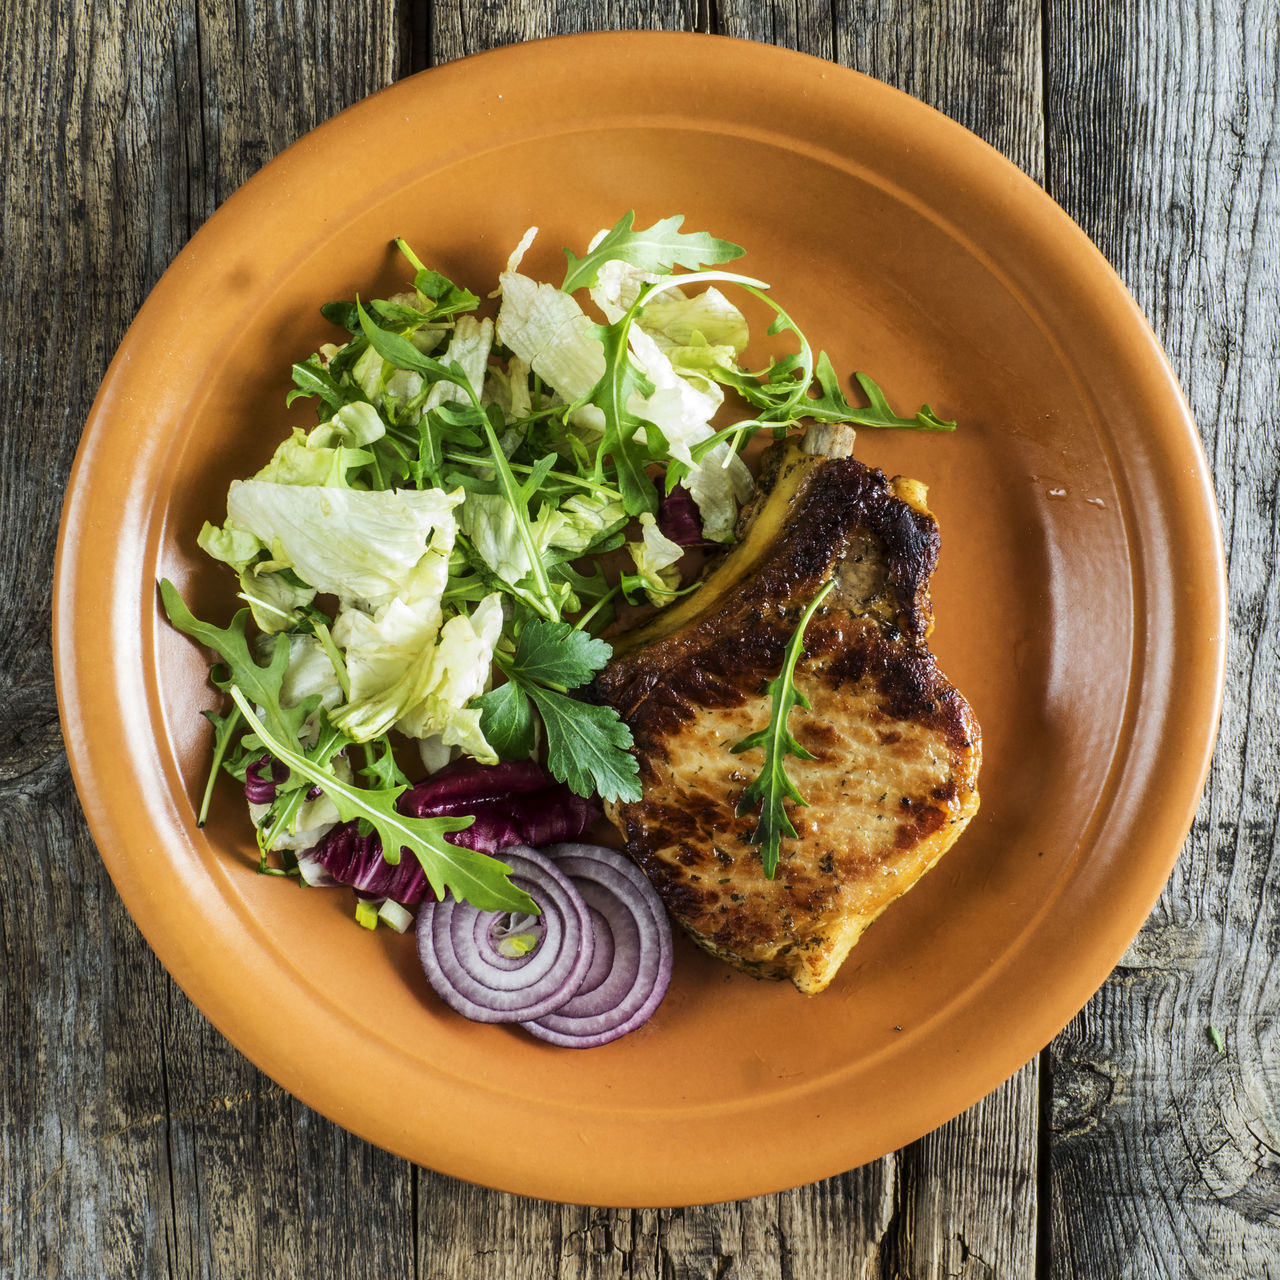 Roasted pork chop on a plate with a green salad, red onion on an old wooden weathered table Chop Close-up Day Food Food And Drink Freshness Green Healthy Eating Indoors  No People Old Onion Plate Pork Ready-to-eat Relaxing Roasted Salad Table Weathered Wood - Material Wooden